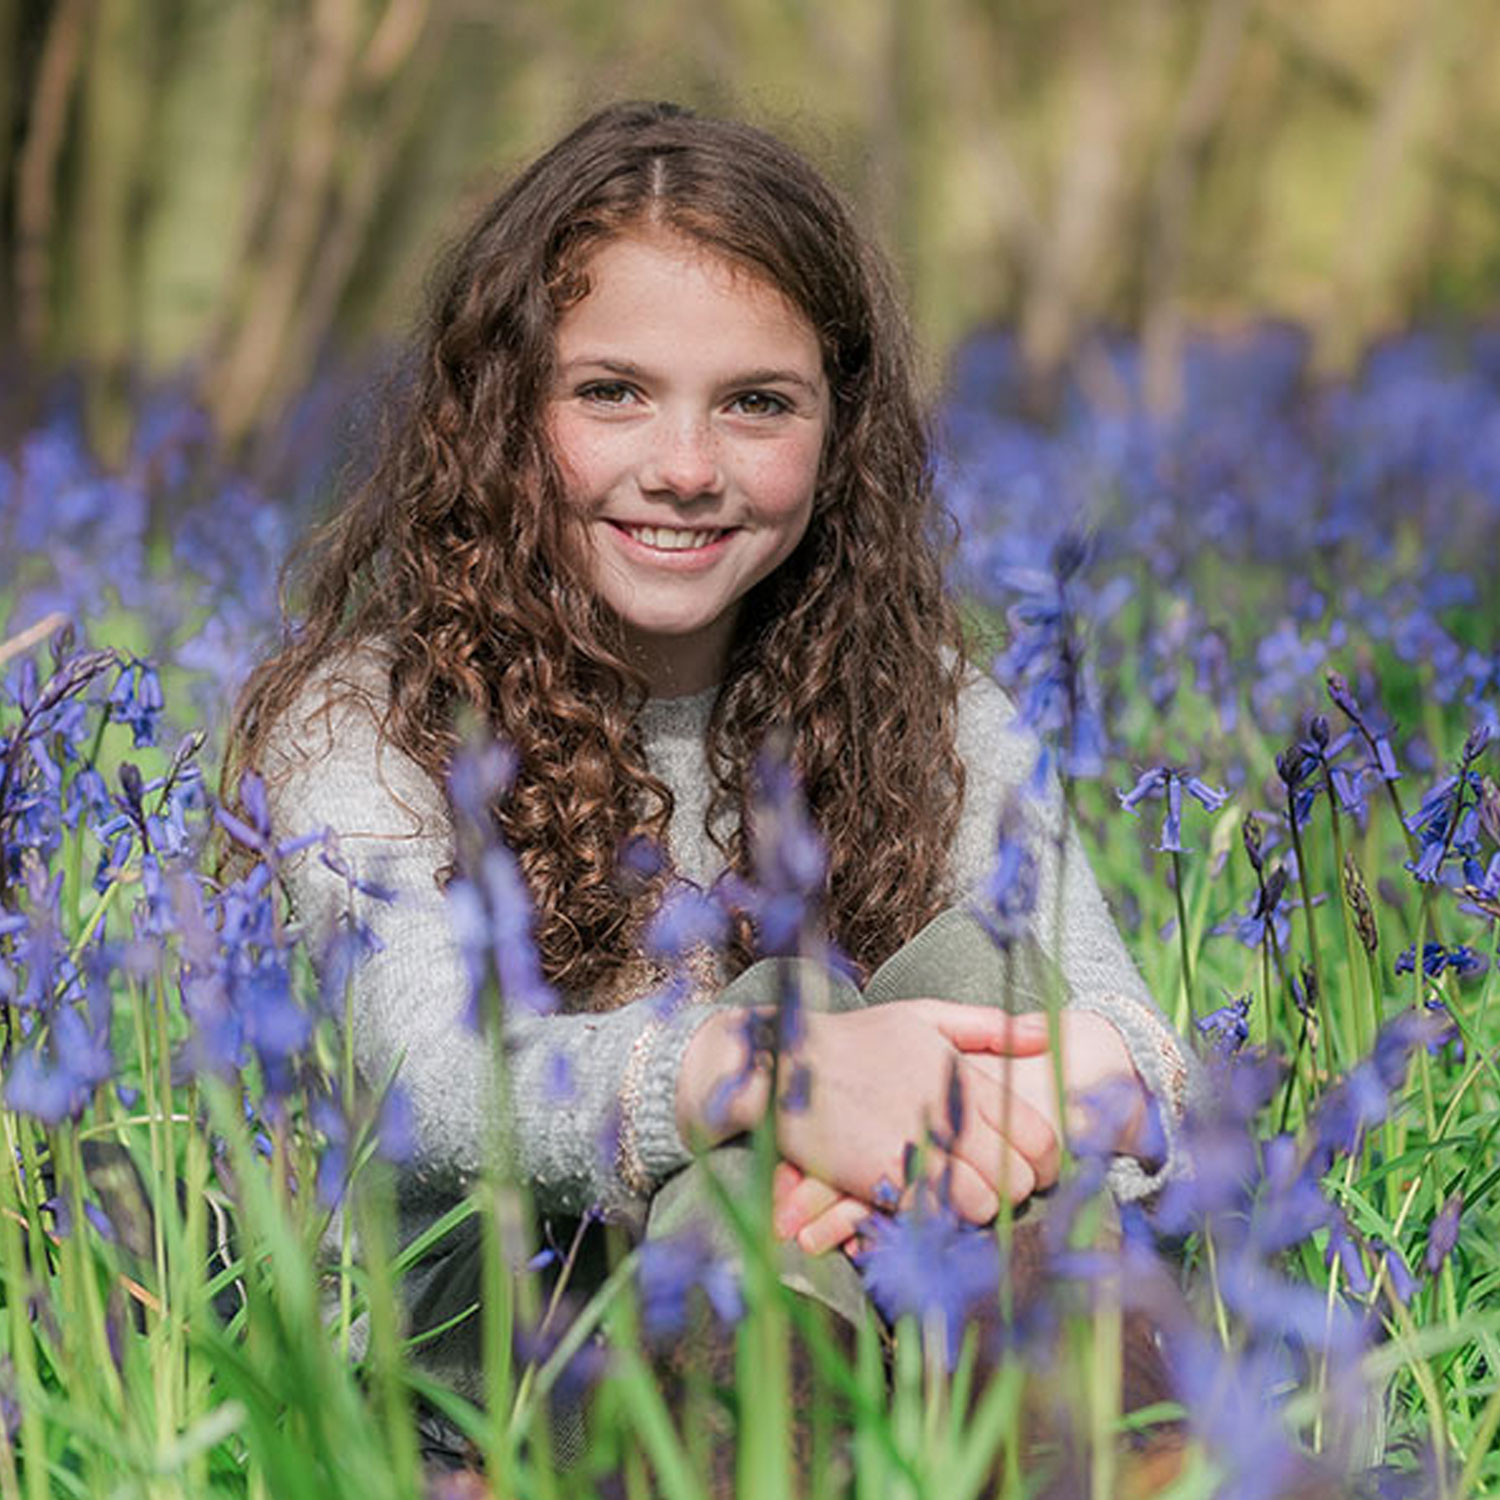 Bluebell Photo Shoots in Northampton